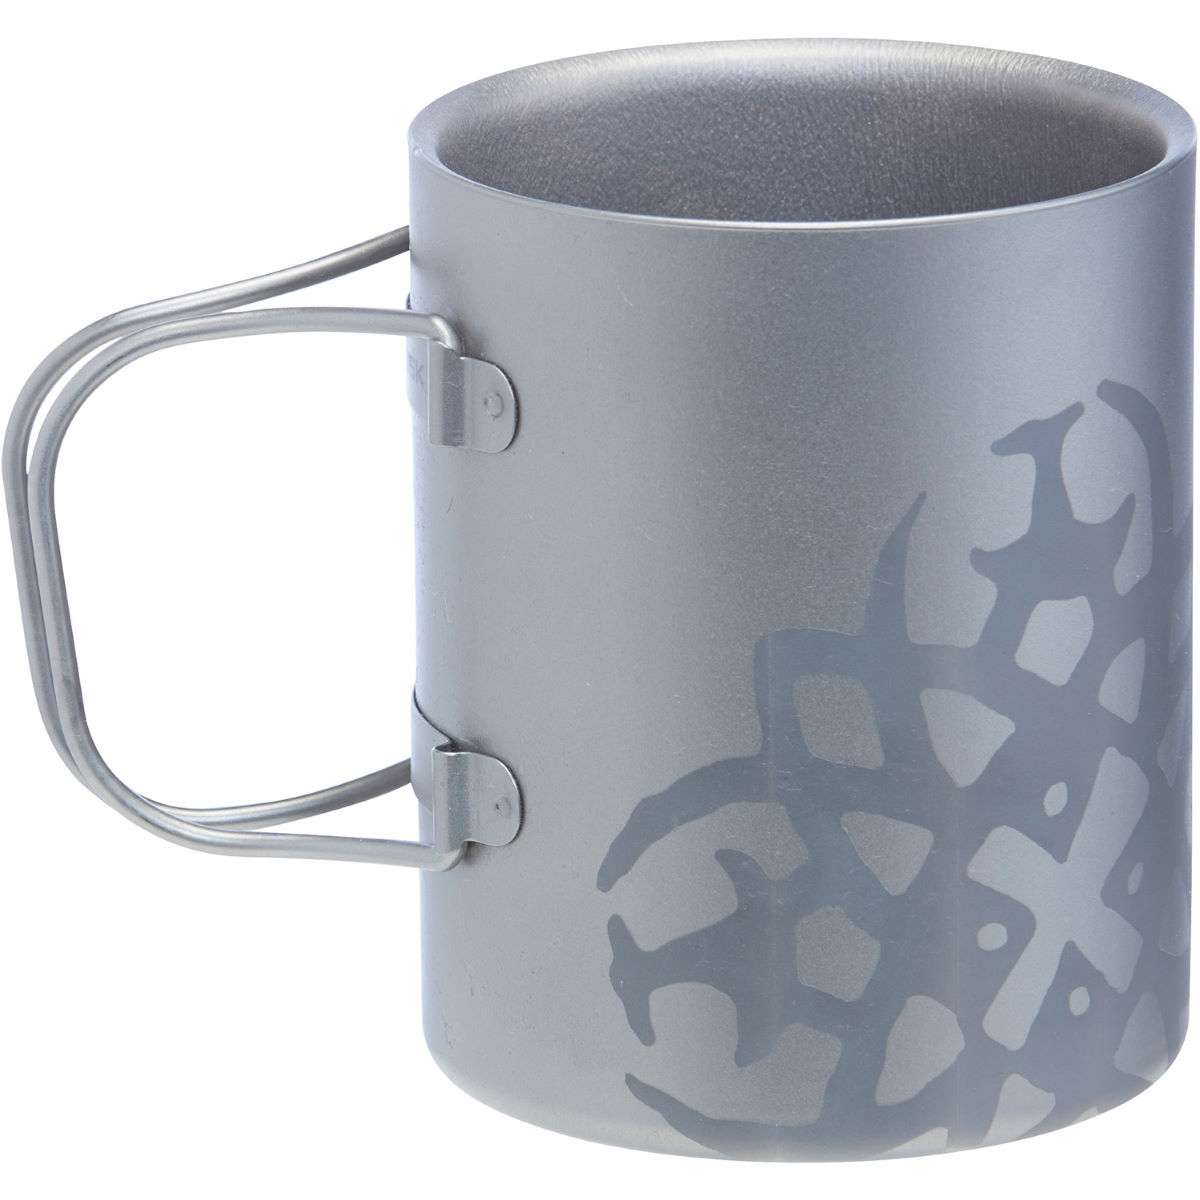 Nordisk Titanium Double Walled Mug (450ml)   Kitchen Equipment